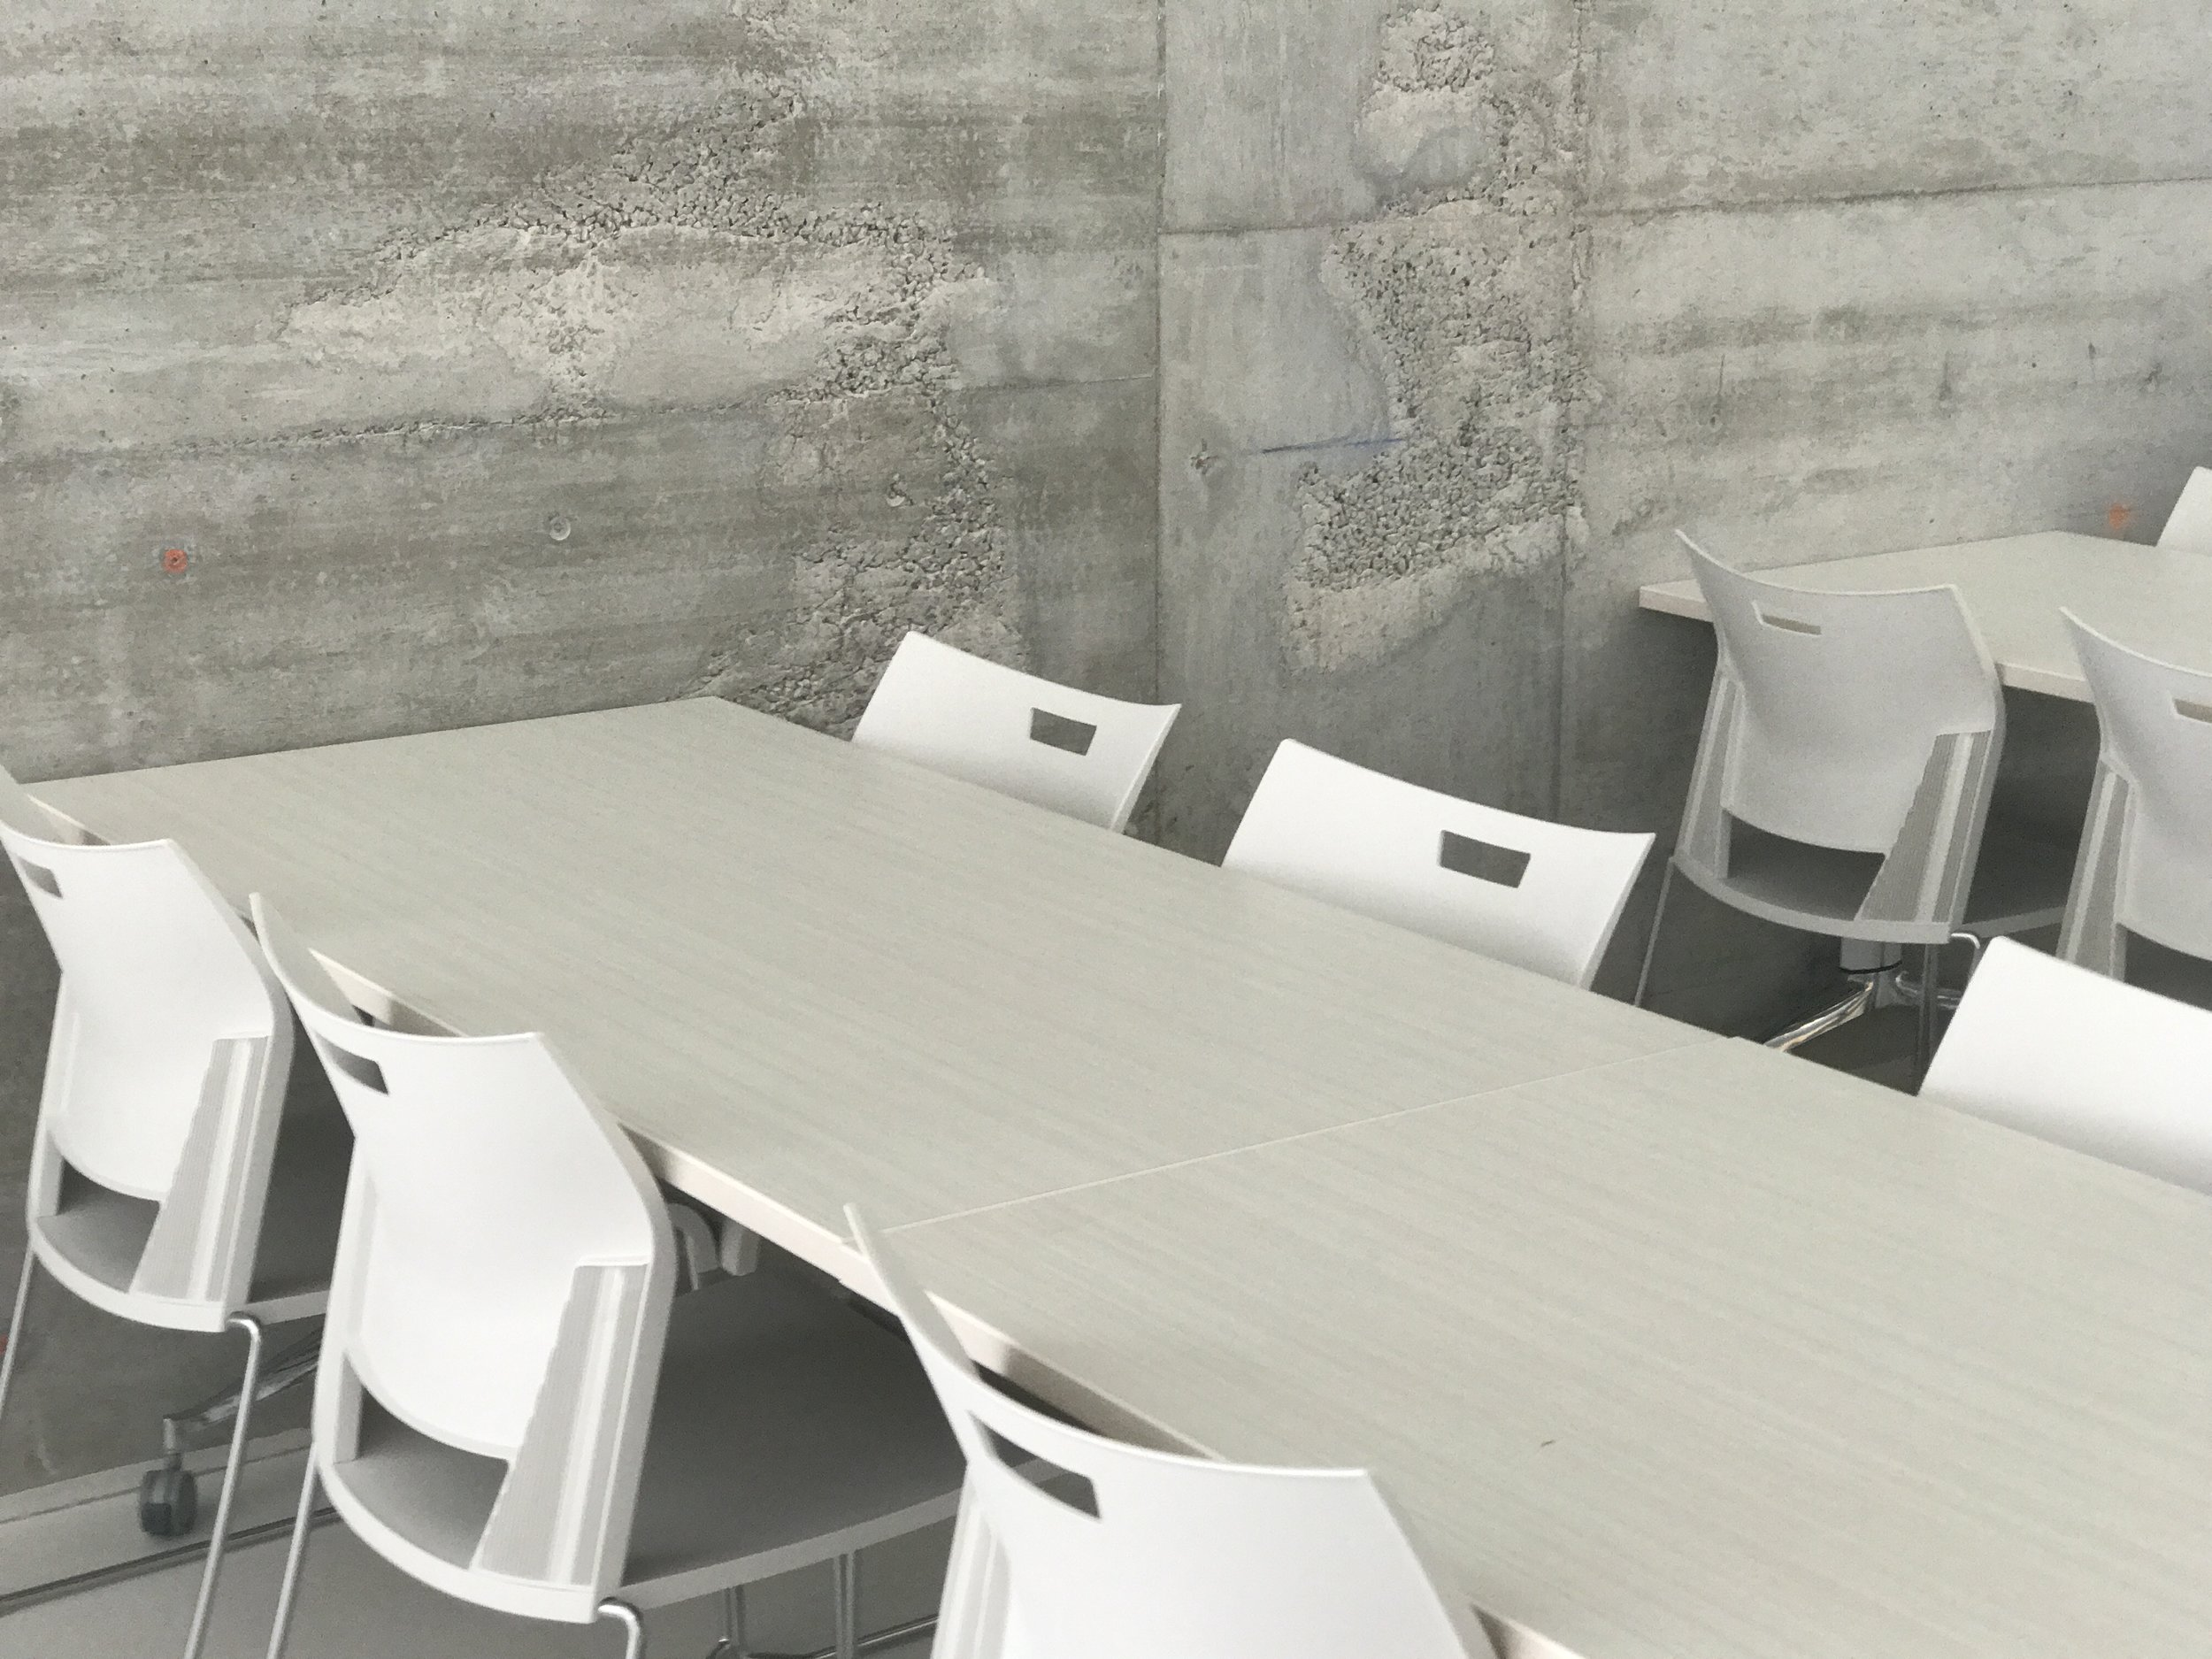 Cafe seating adjacent to a feature wall.